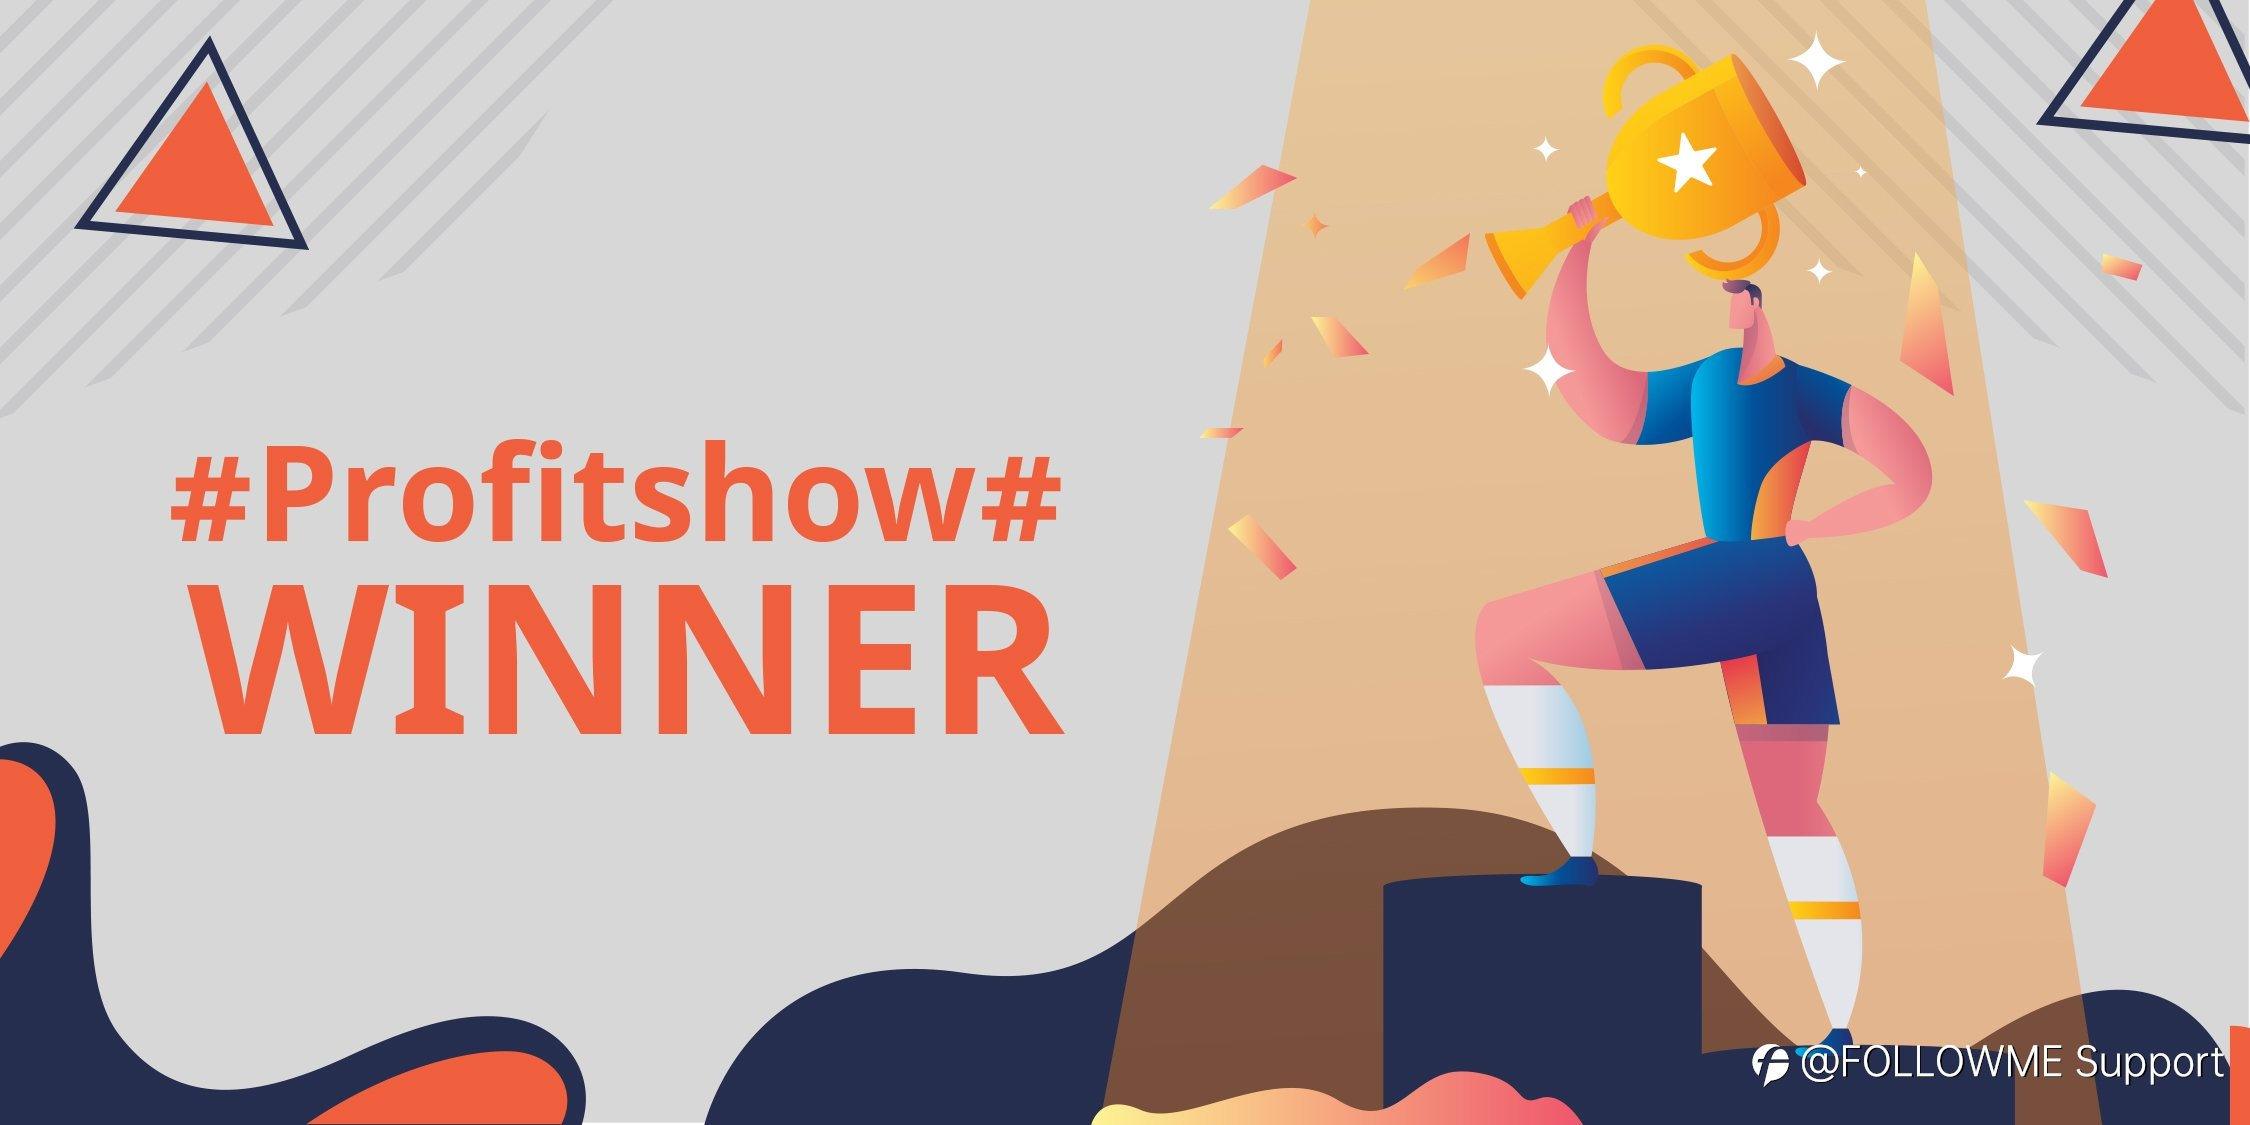 Featured #Profitshow# Winners of the Second Week!